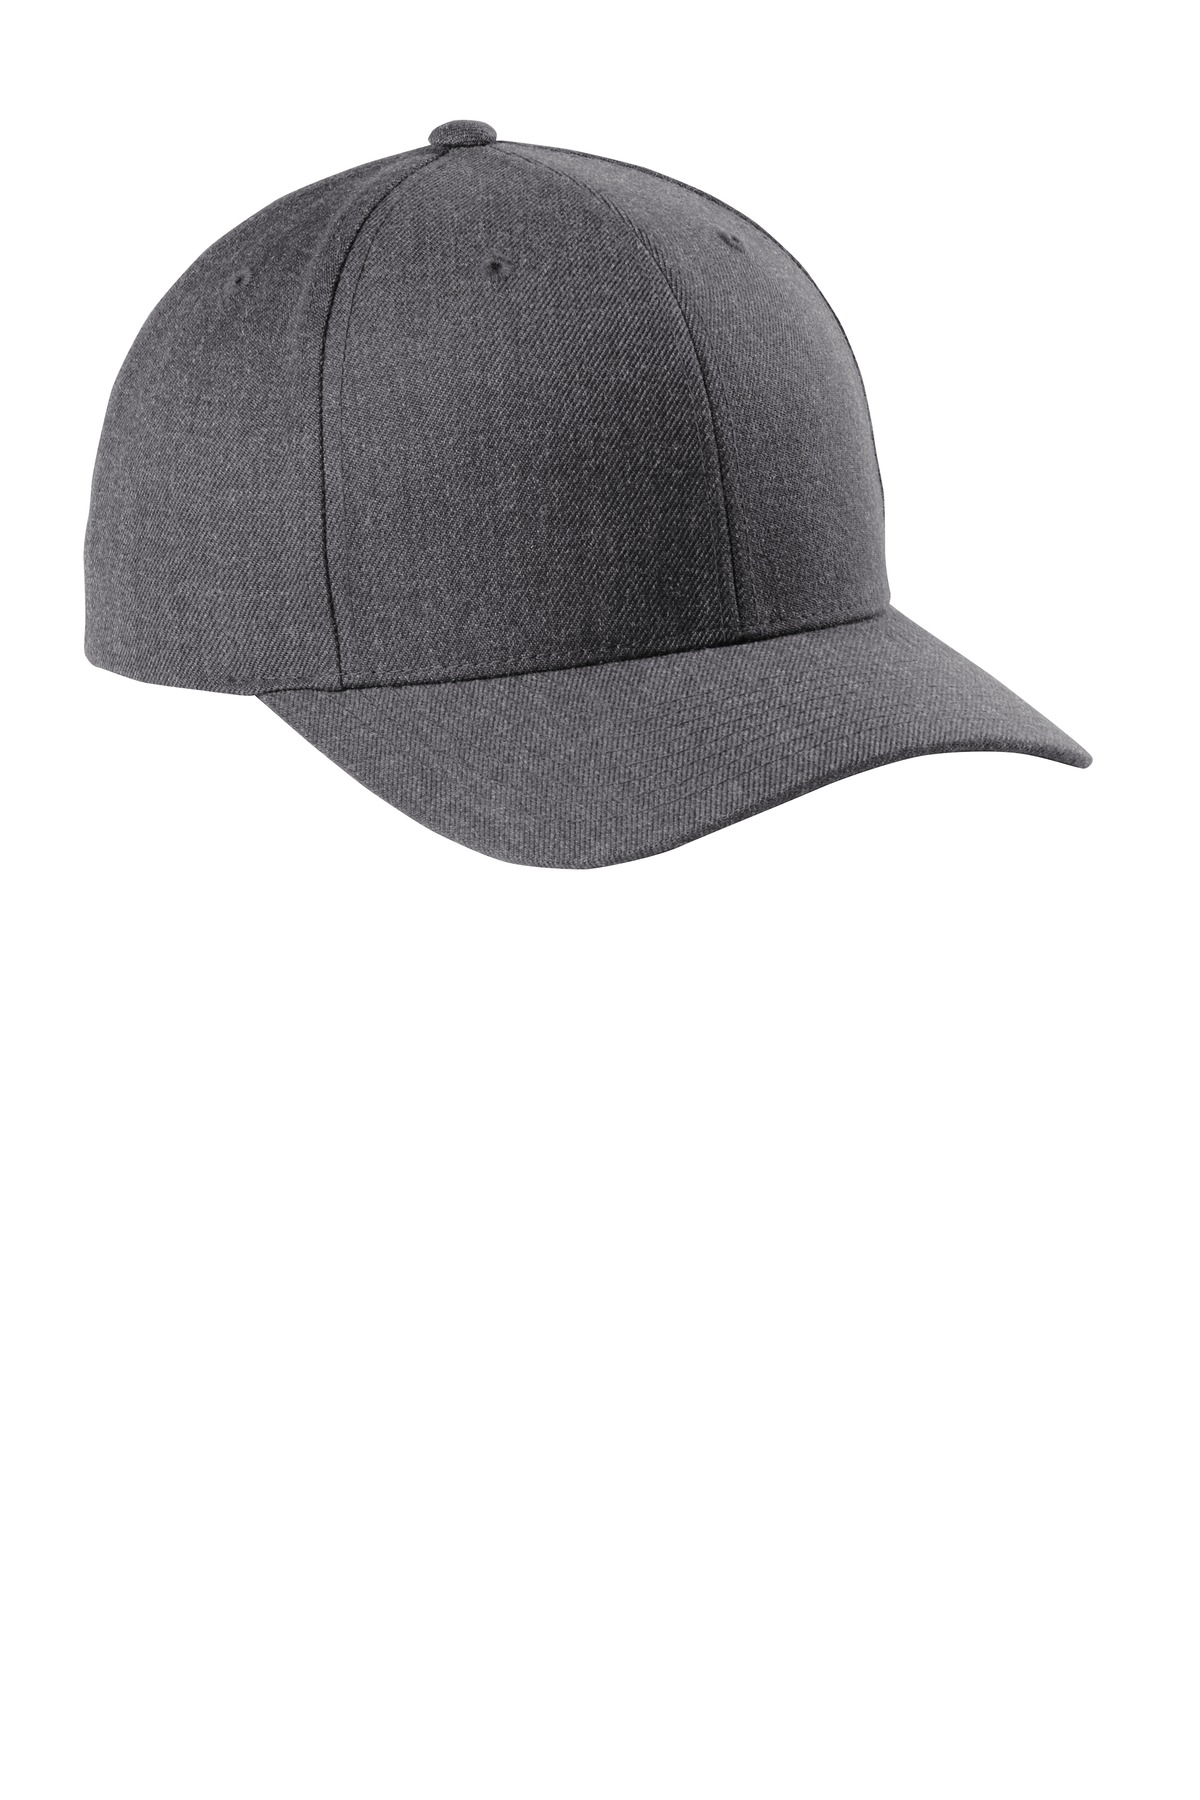 Sport-Tek  ®  Yupoong  ®  Curve Bill Snapback Cap. STC43 - Dark Heather Grey